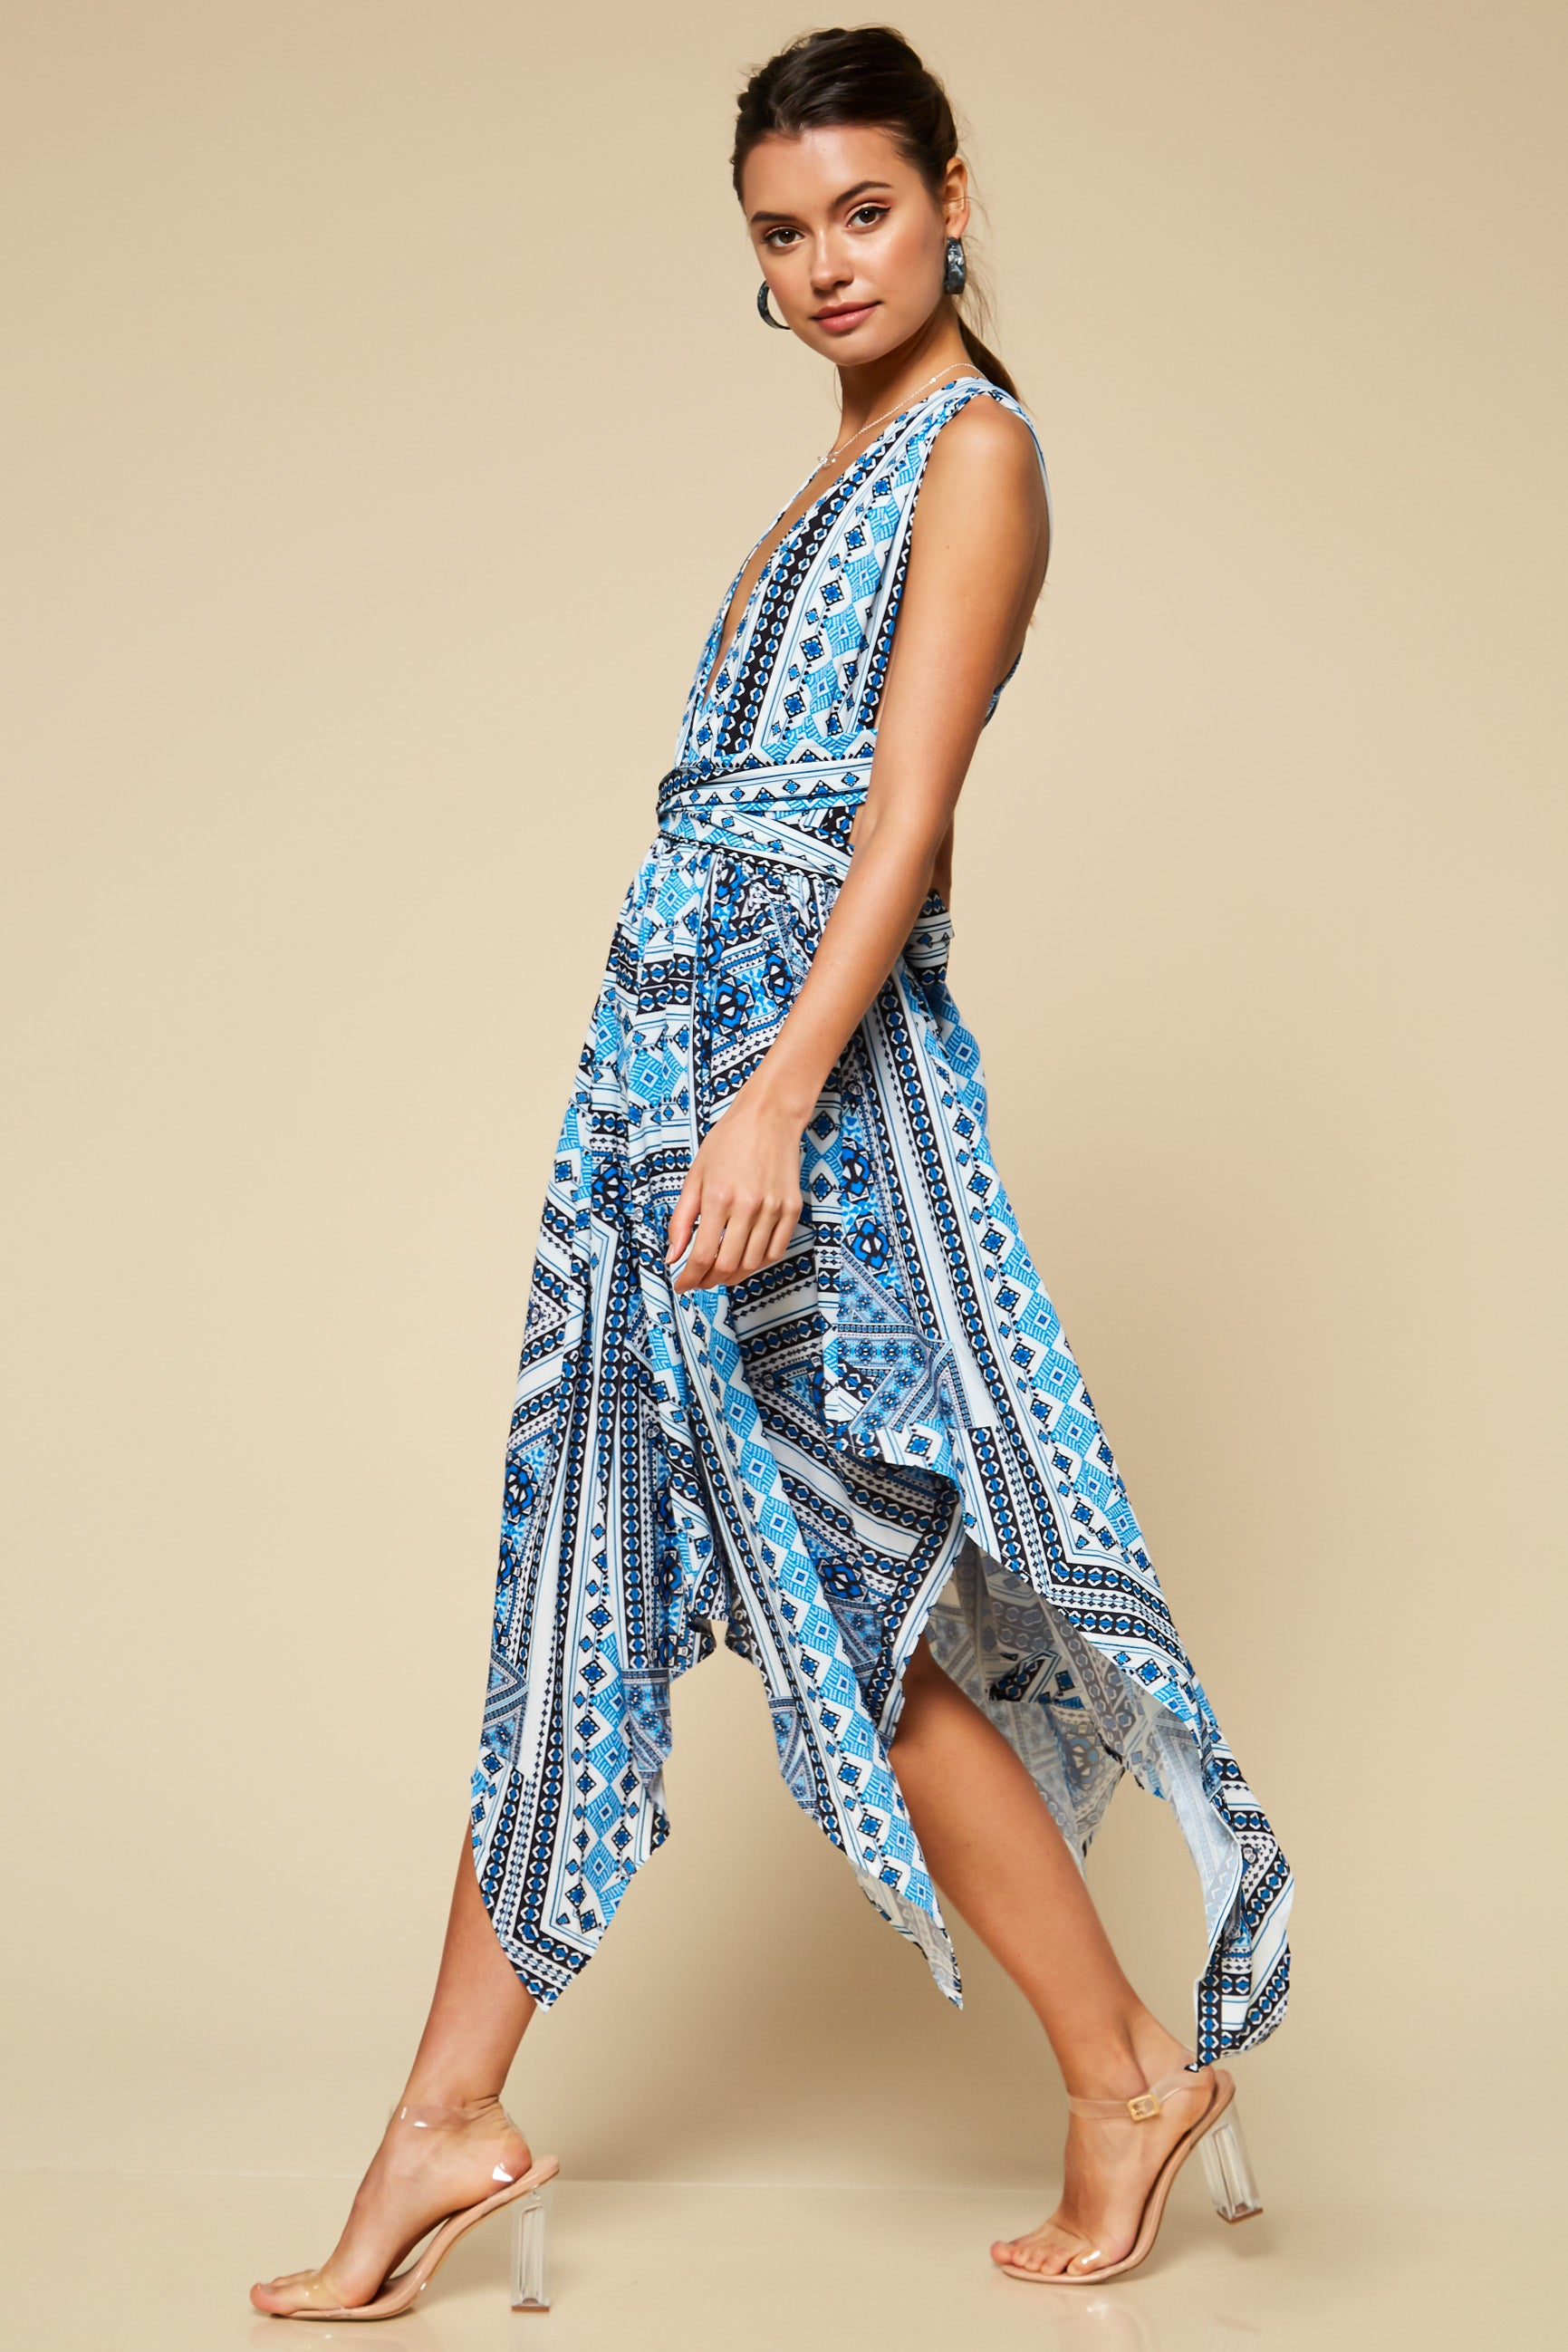 Kida Asymmetrical Multi-Print Midi Dress - Geegeebae